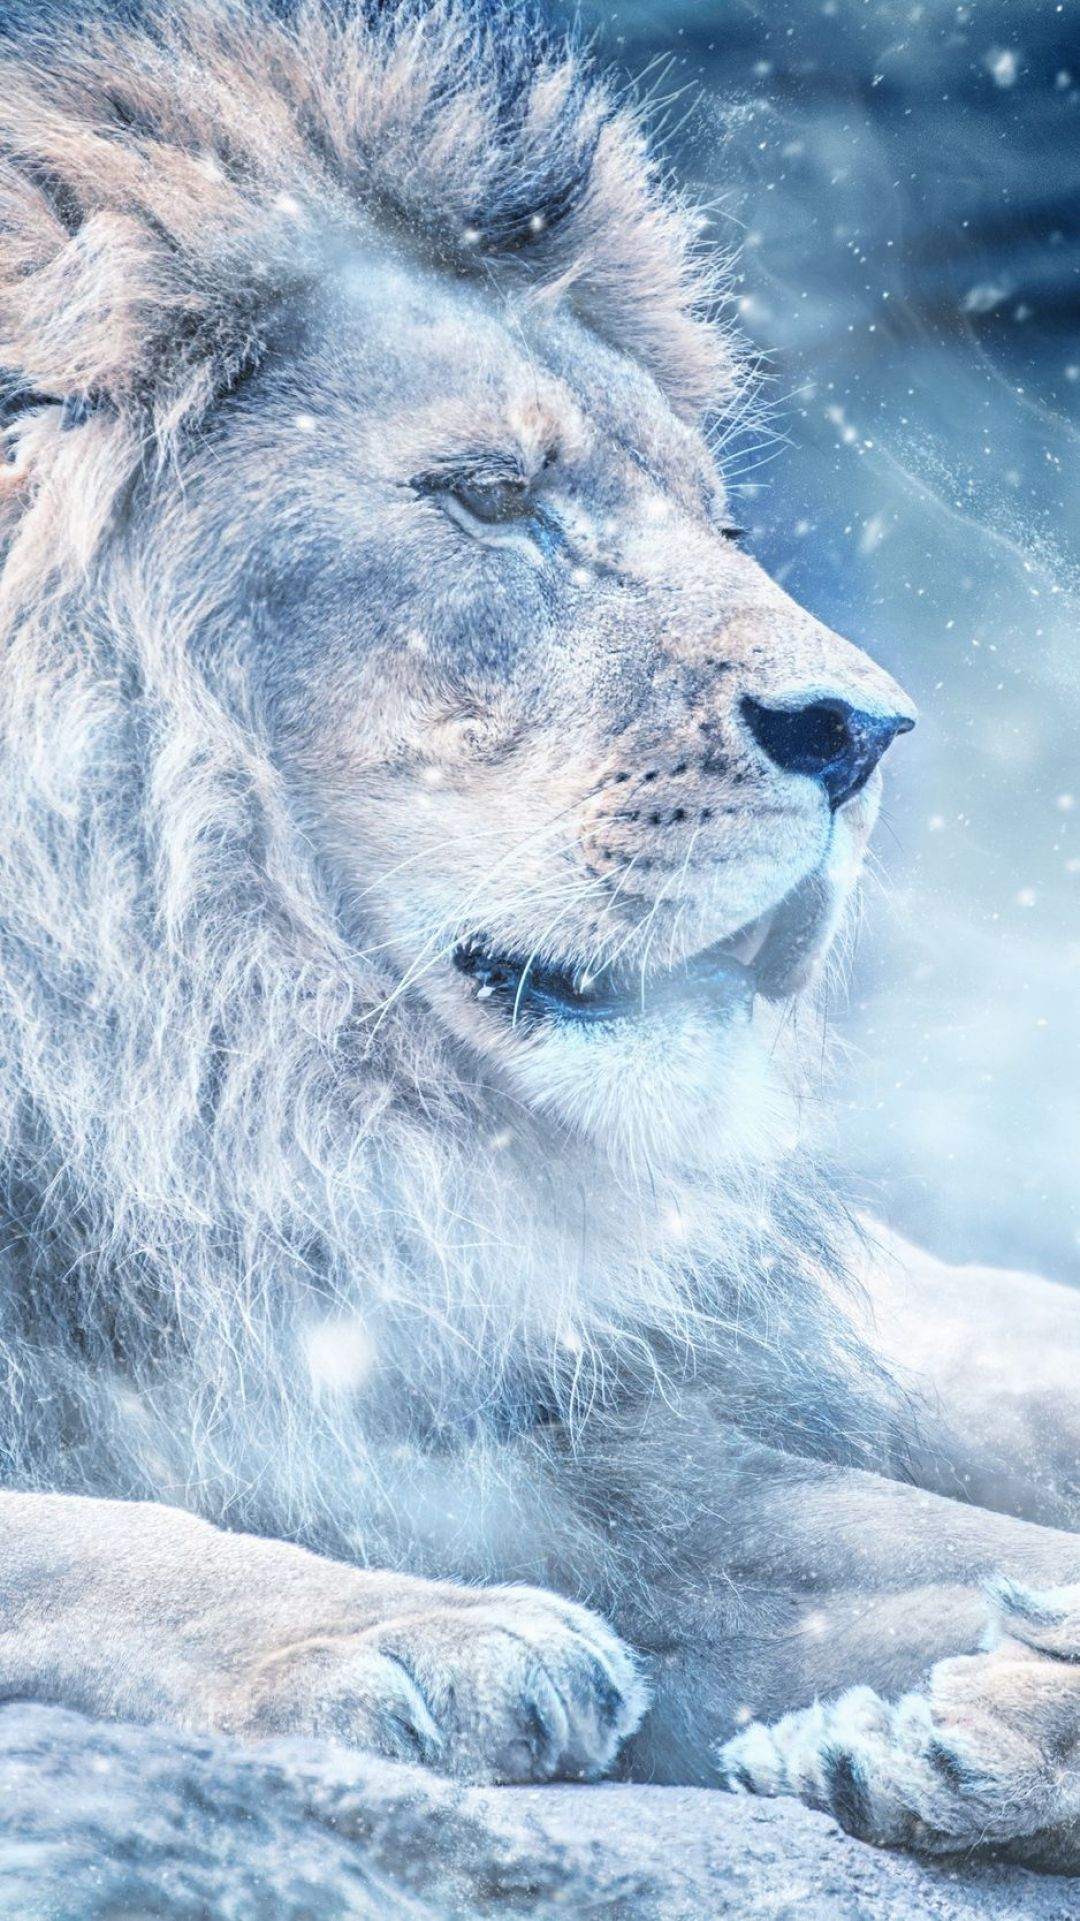 Lion Iphone Android Iphone Desktop Hd Backgrounds Wallpapers 1080p 4k 124959 Hdwallpapers Androidwallpapers Animal Wallpaper Beast Wallpaper Lion